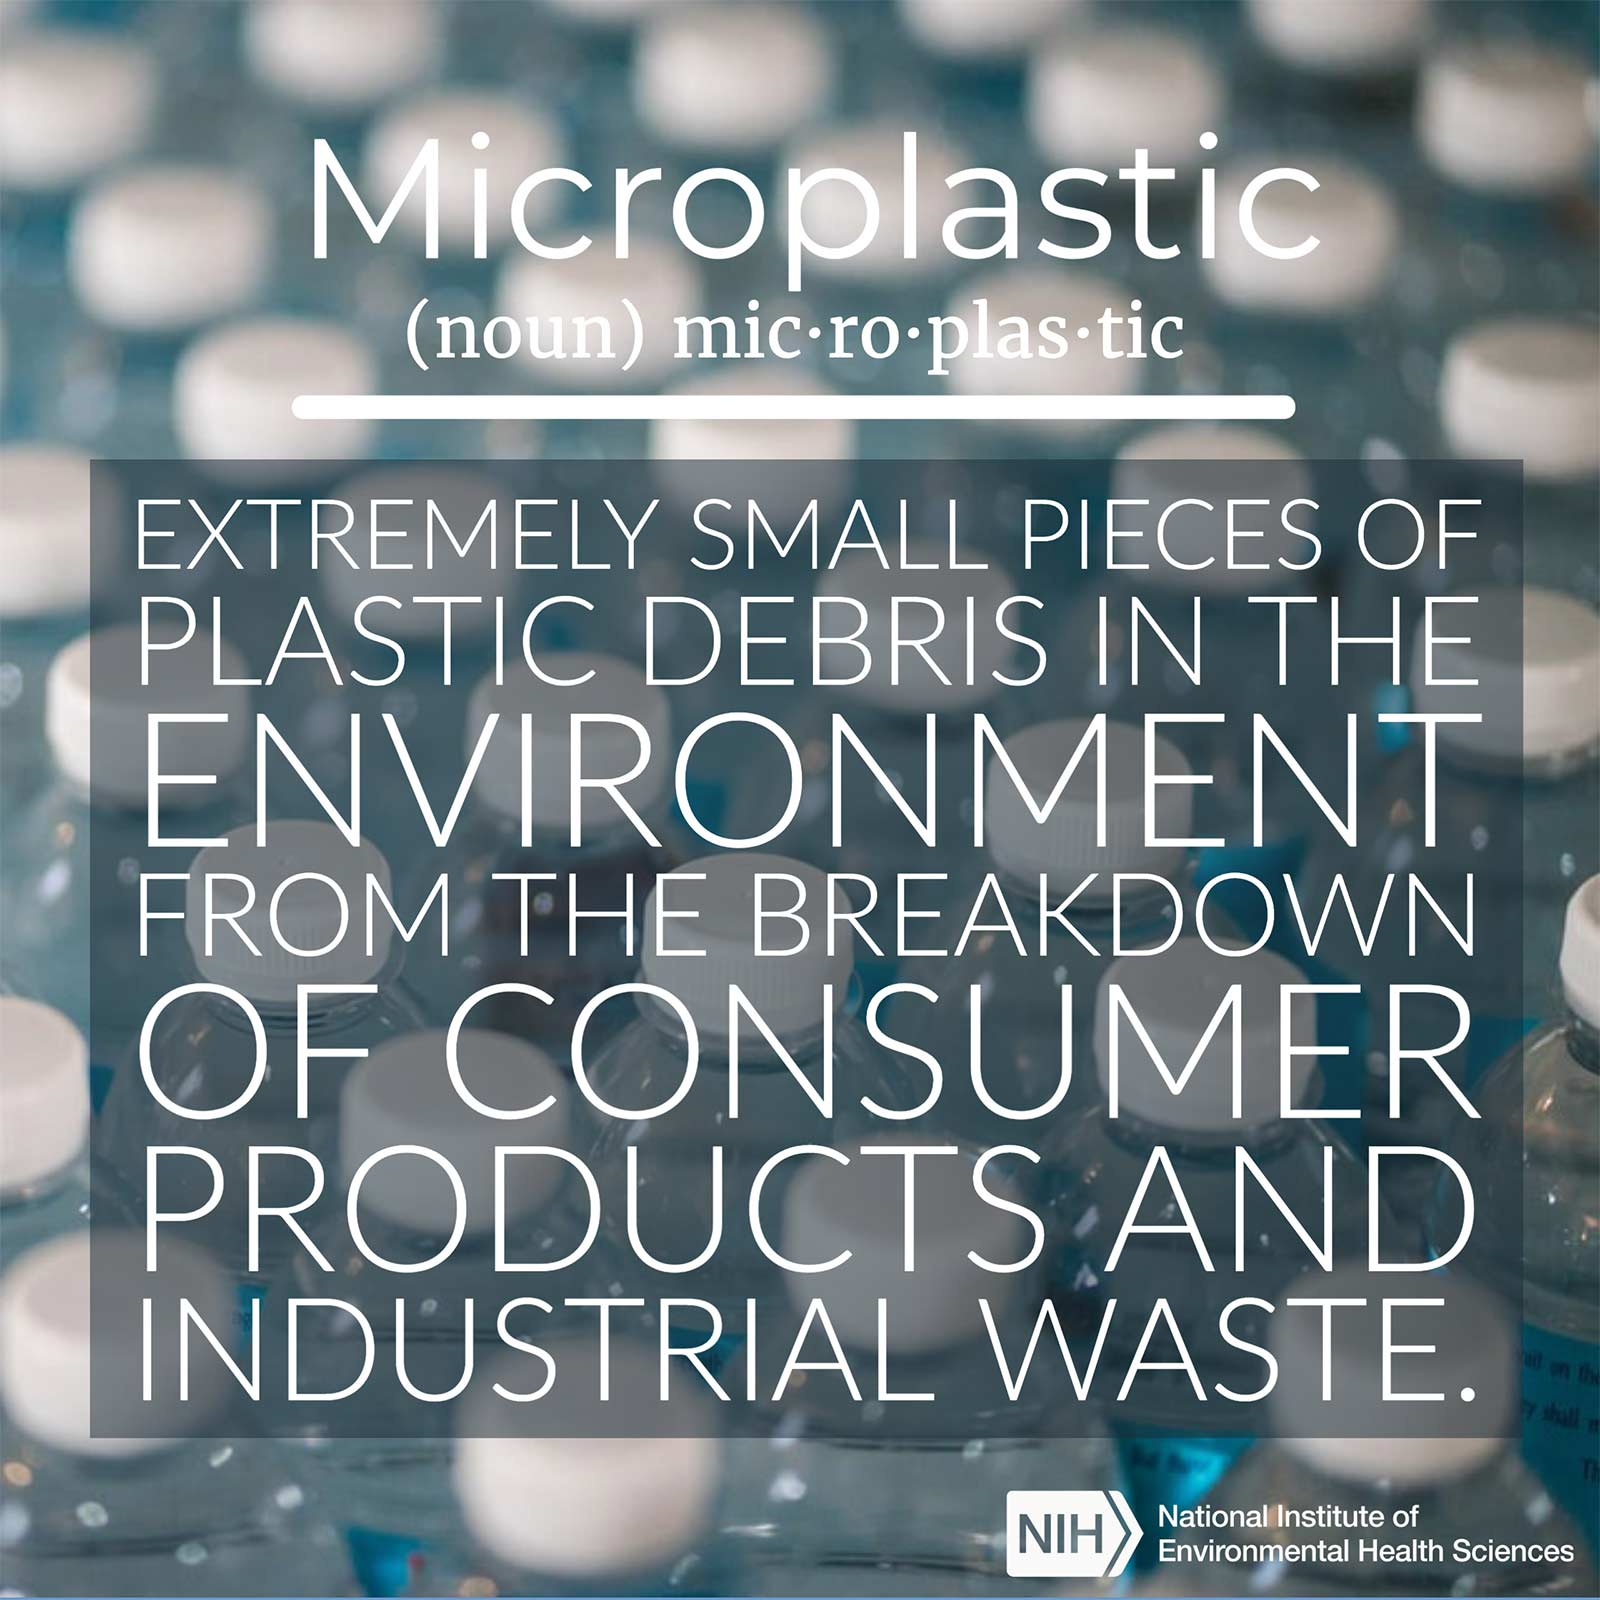 Microplastic (noun) defined as 'extremely small pieces of plastic debris in the environment from the breakdown of consumer products and industrial waste.'